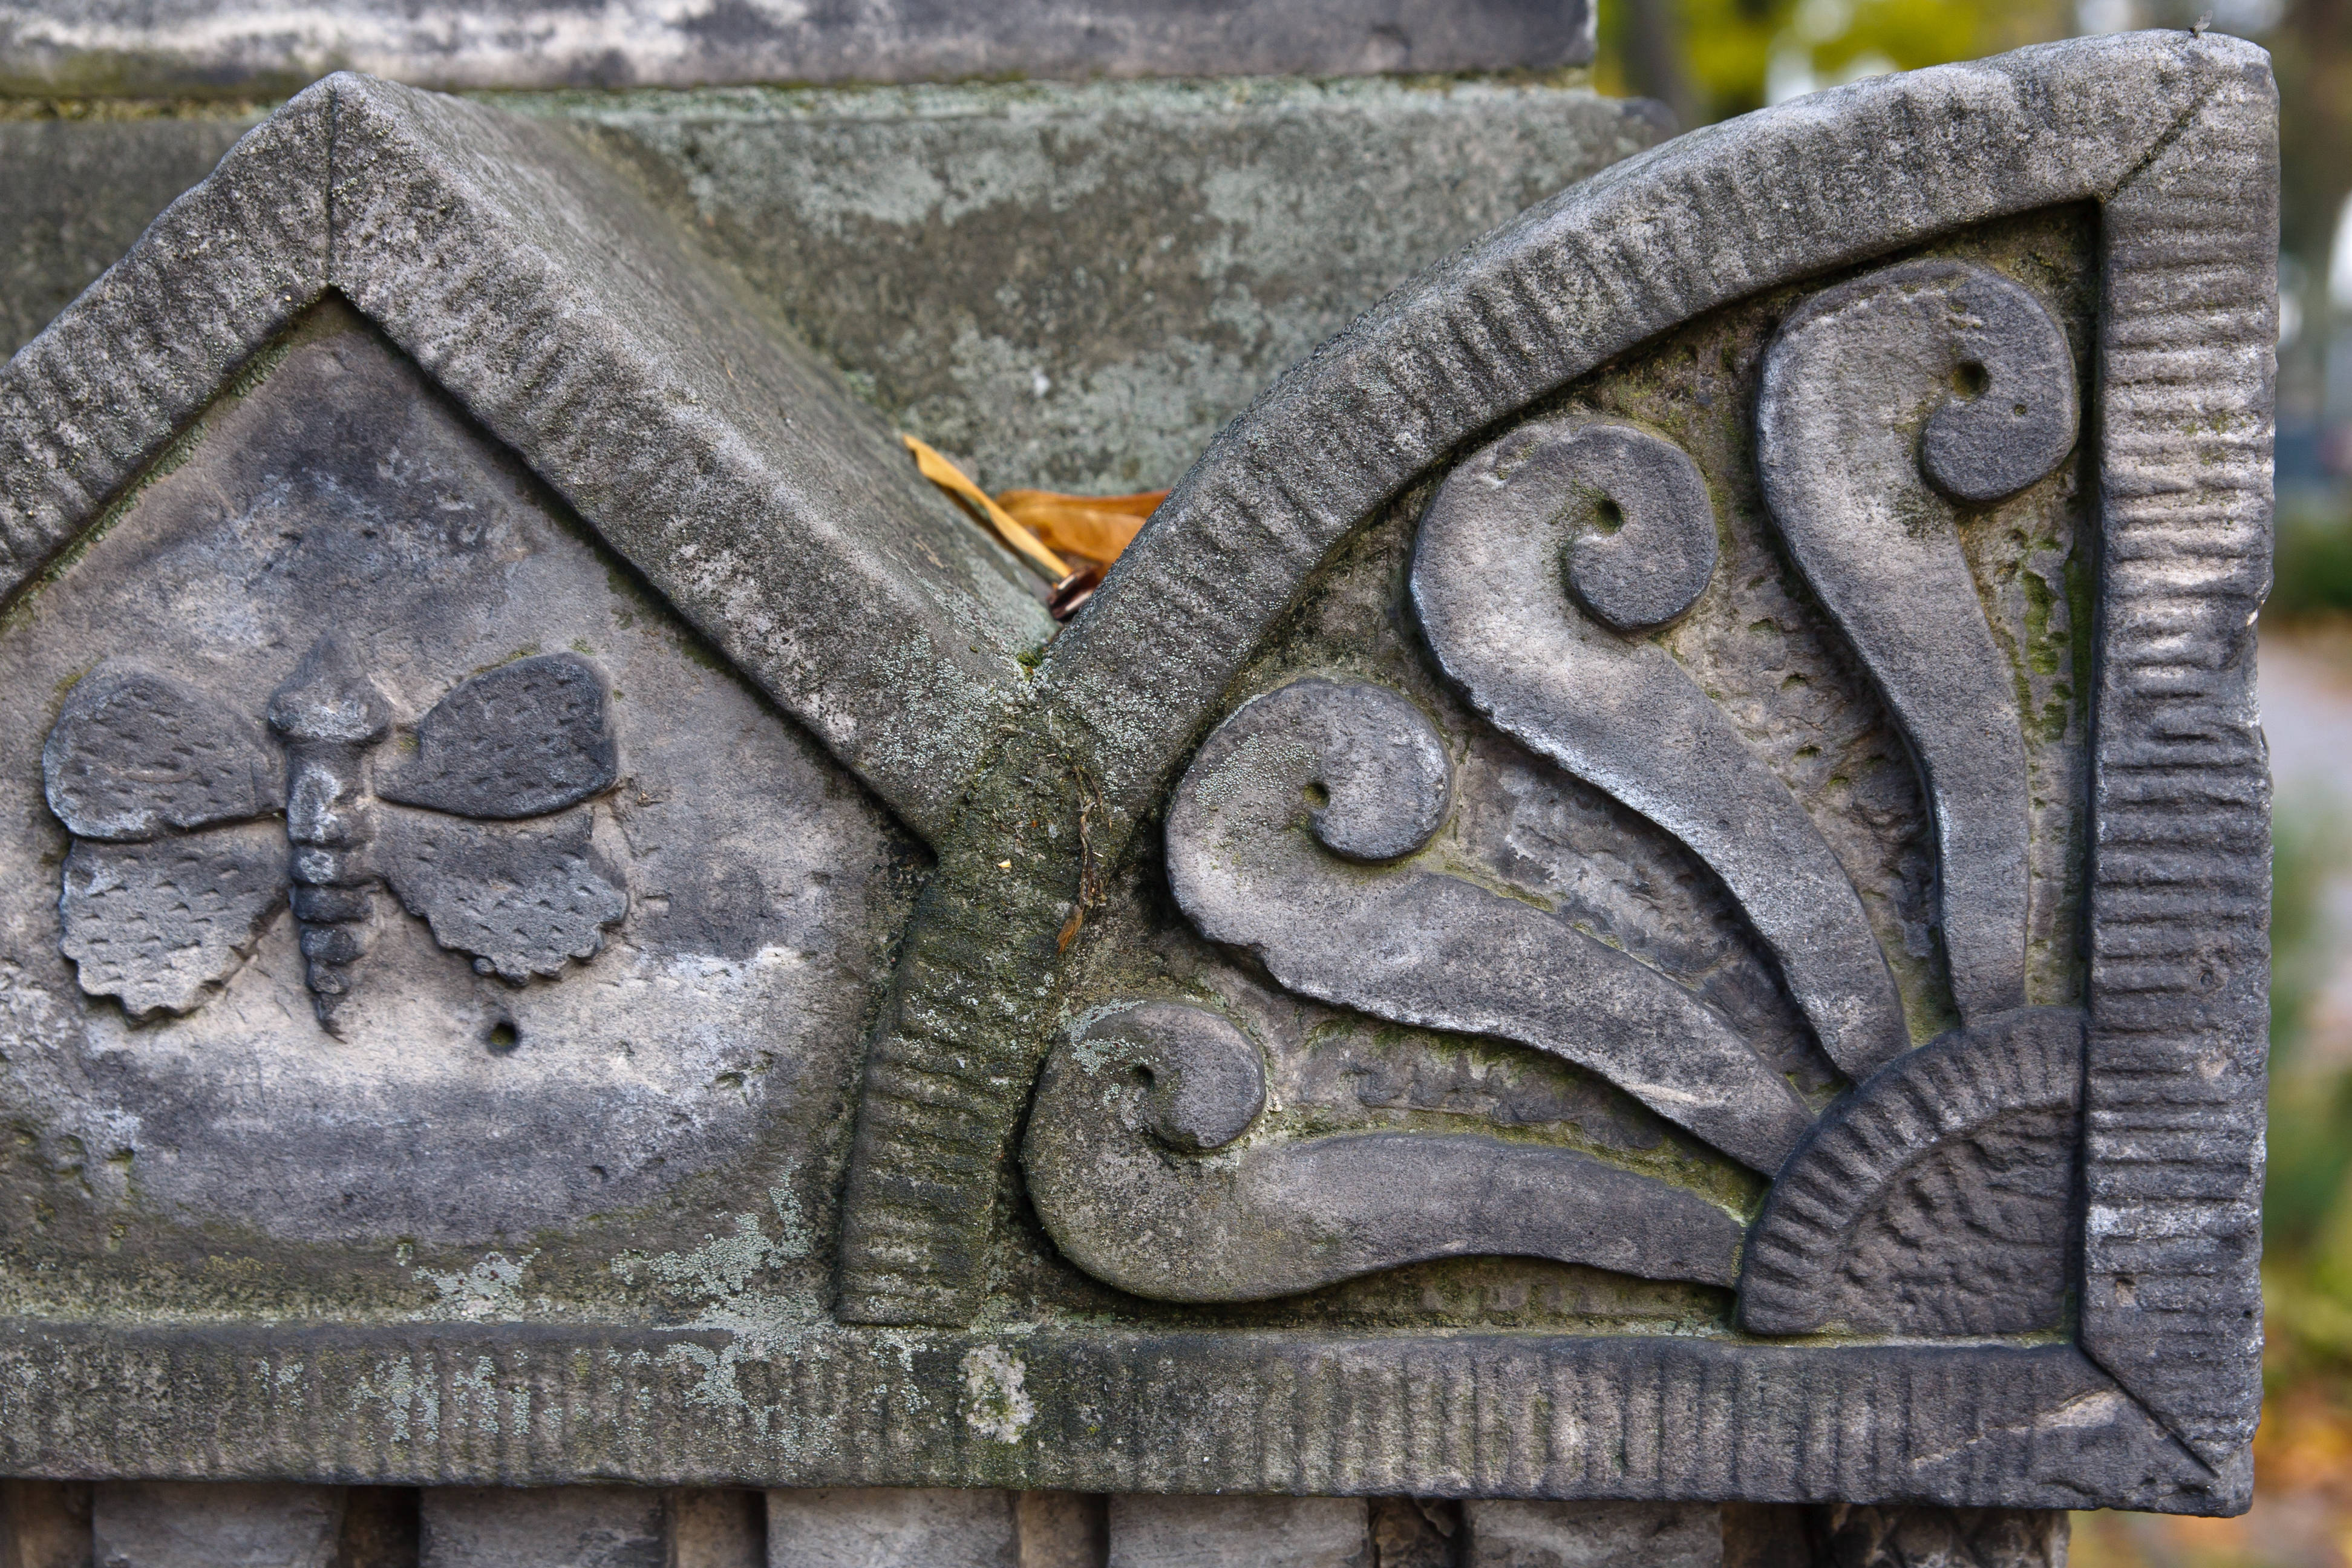 carved insect on headstone